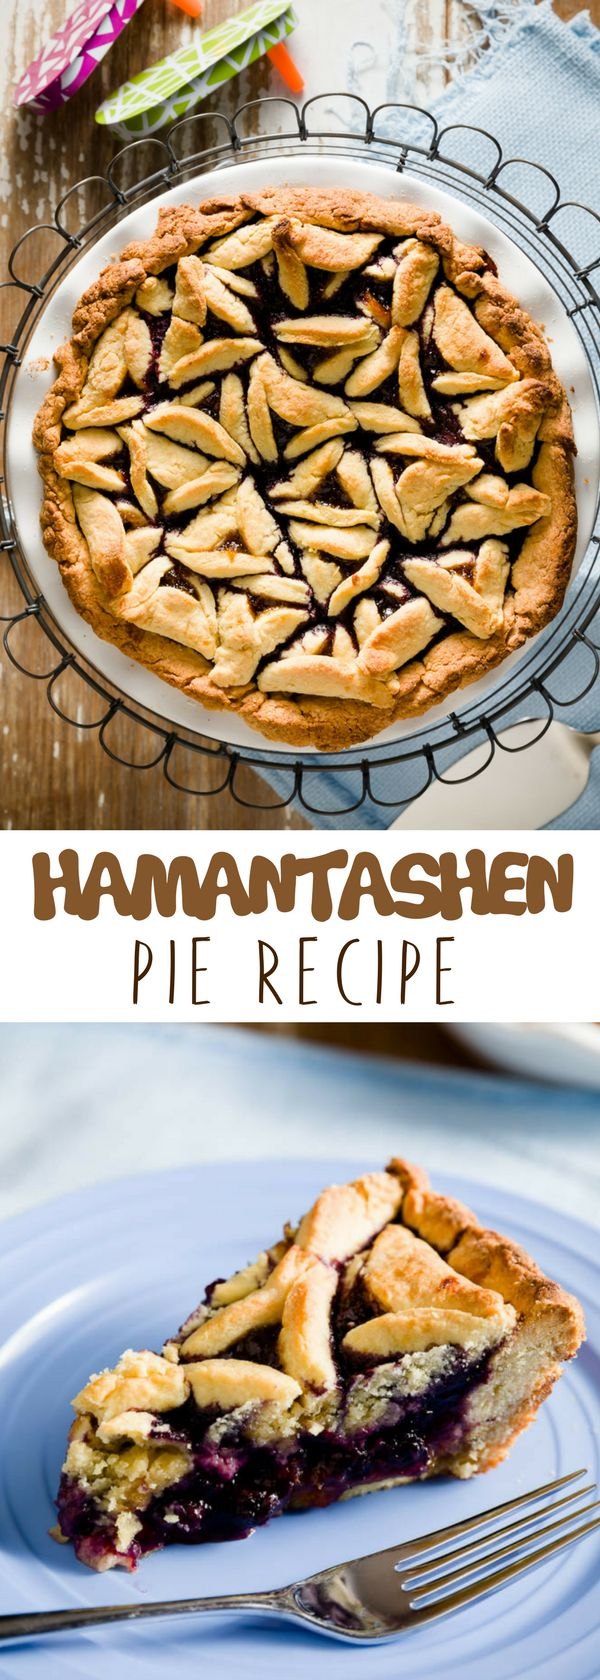 Looking for unique pie recipes made from scratch? This Hamantashen Pie  is topped with a layer of jam that would yield an overly sweet pie. For more simple baking desserts recipes and homemade sweet treats, check us out at #cupcakeproject. #desserts #yummydesserts #recipeoftheday #sweettooth